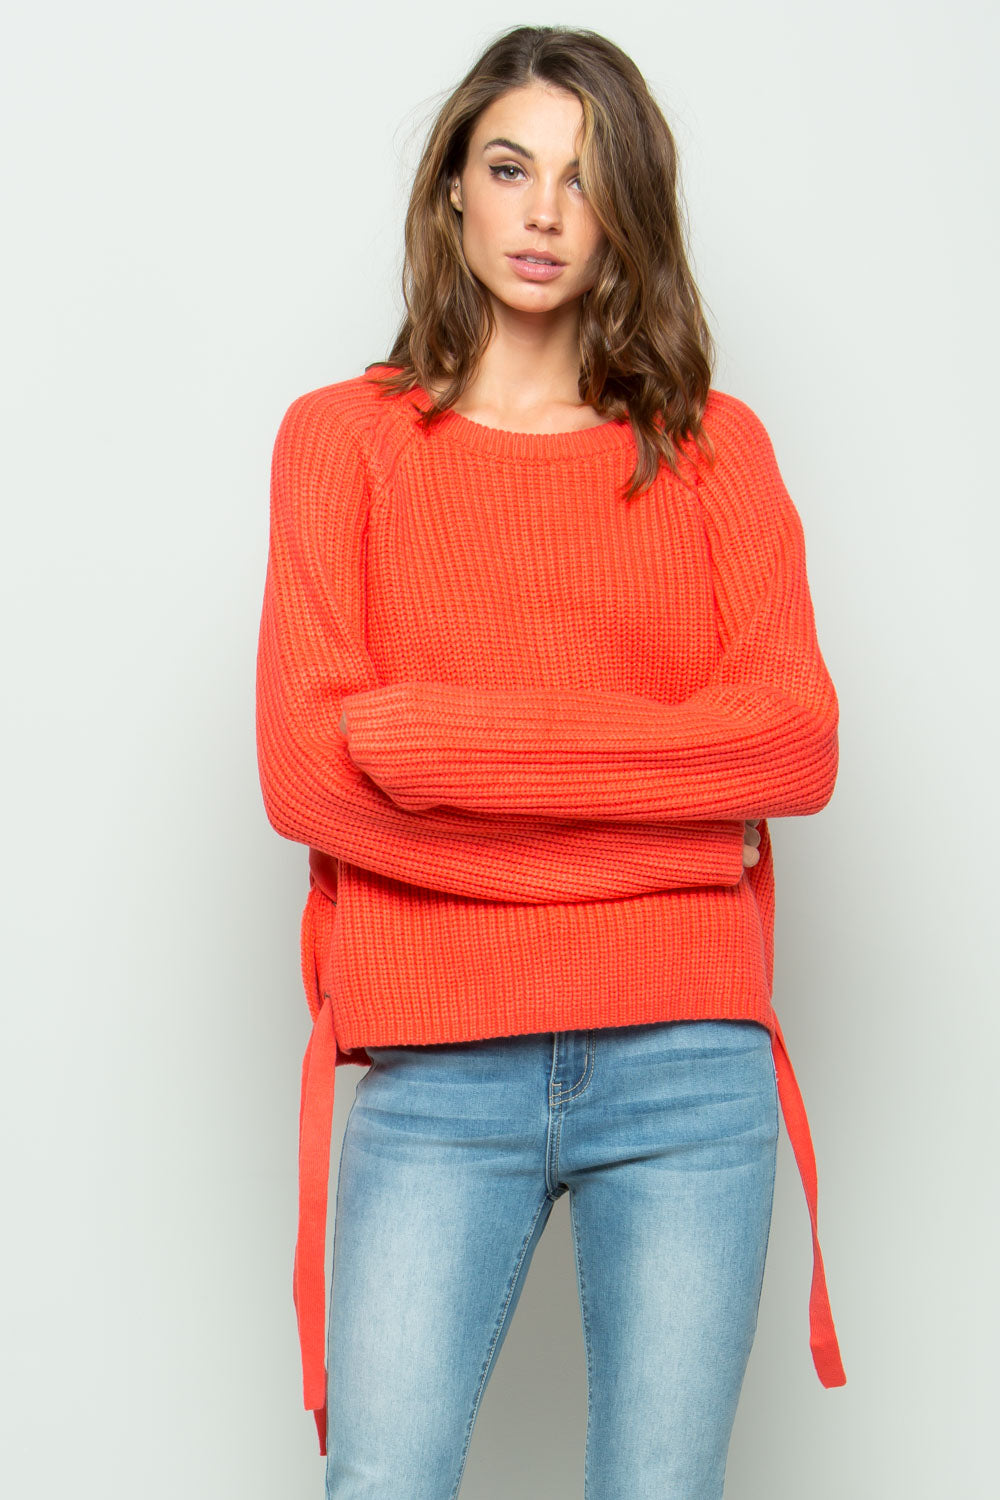 SW6022 Side Detail Sweater - Coral